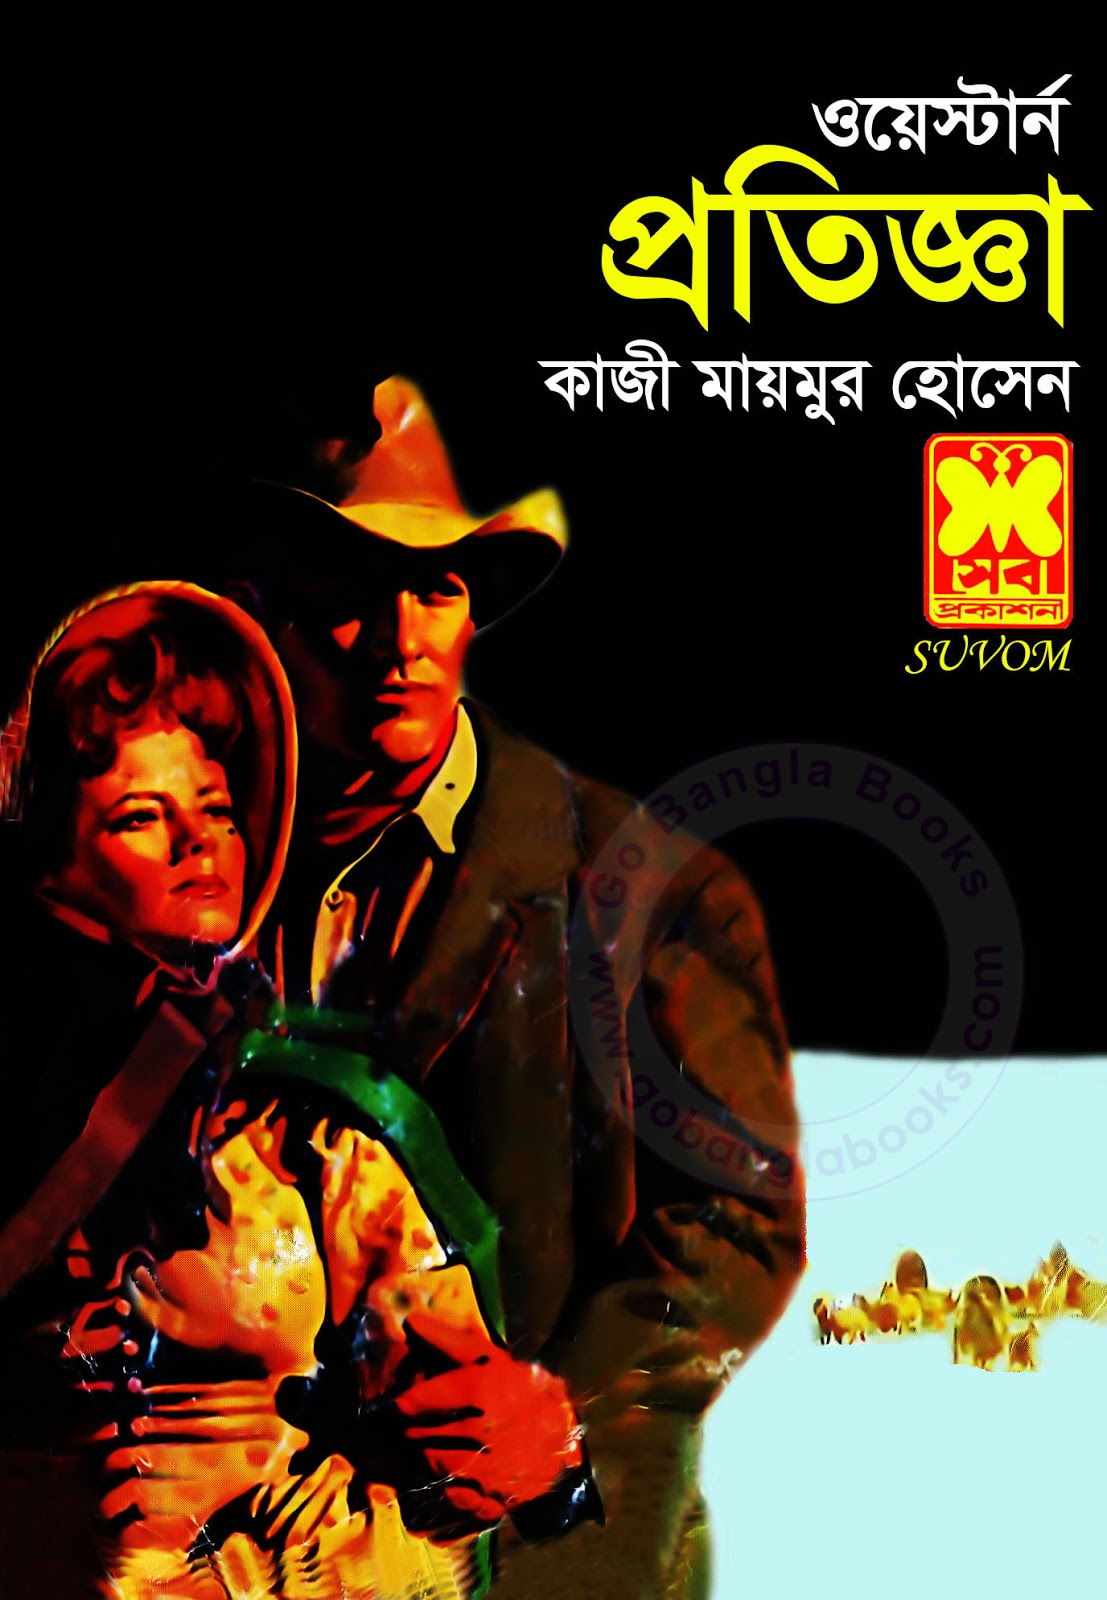 Pratigya by Qazi Maimur Hossain (Western Series) ~ Free Download